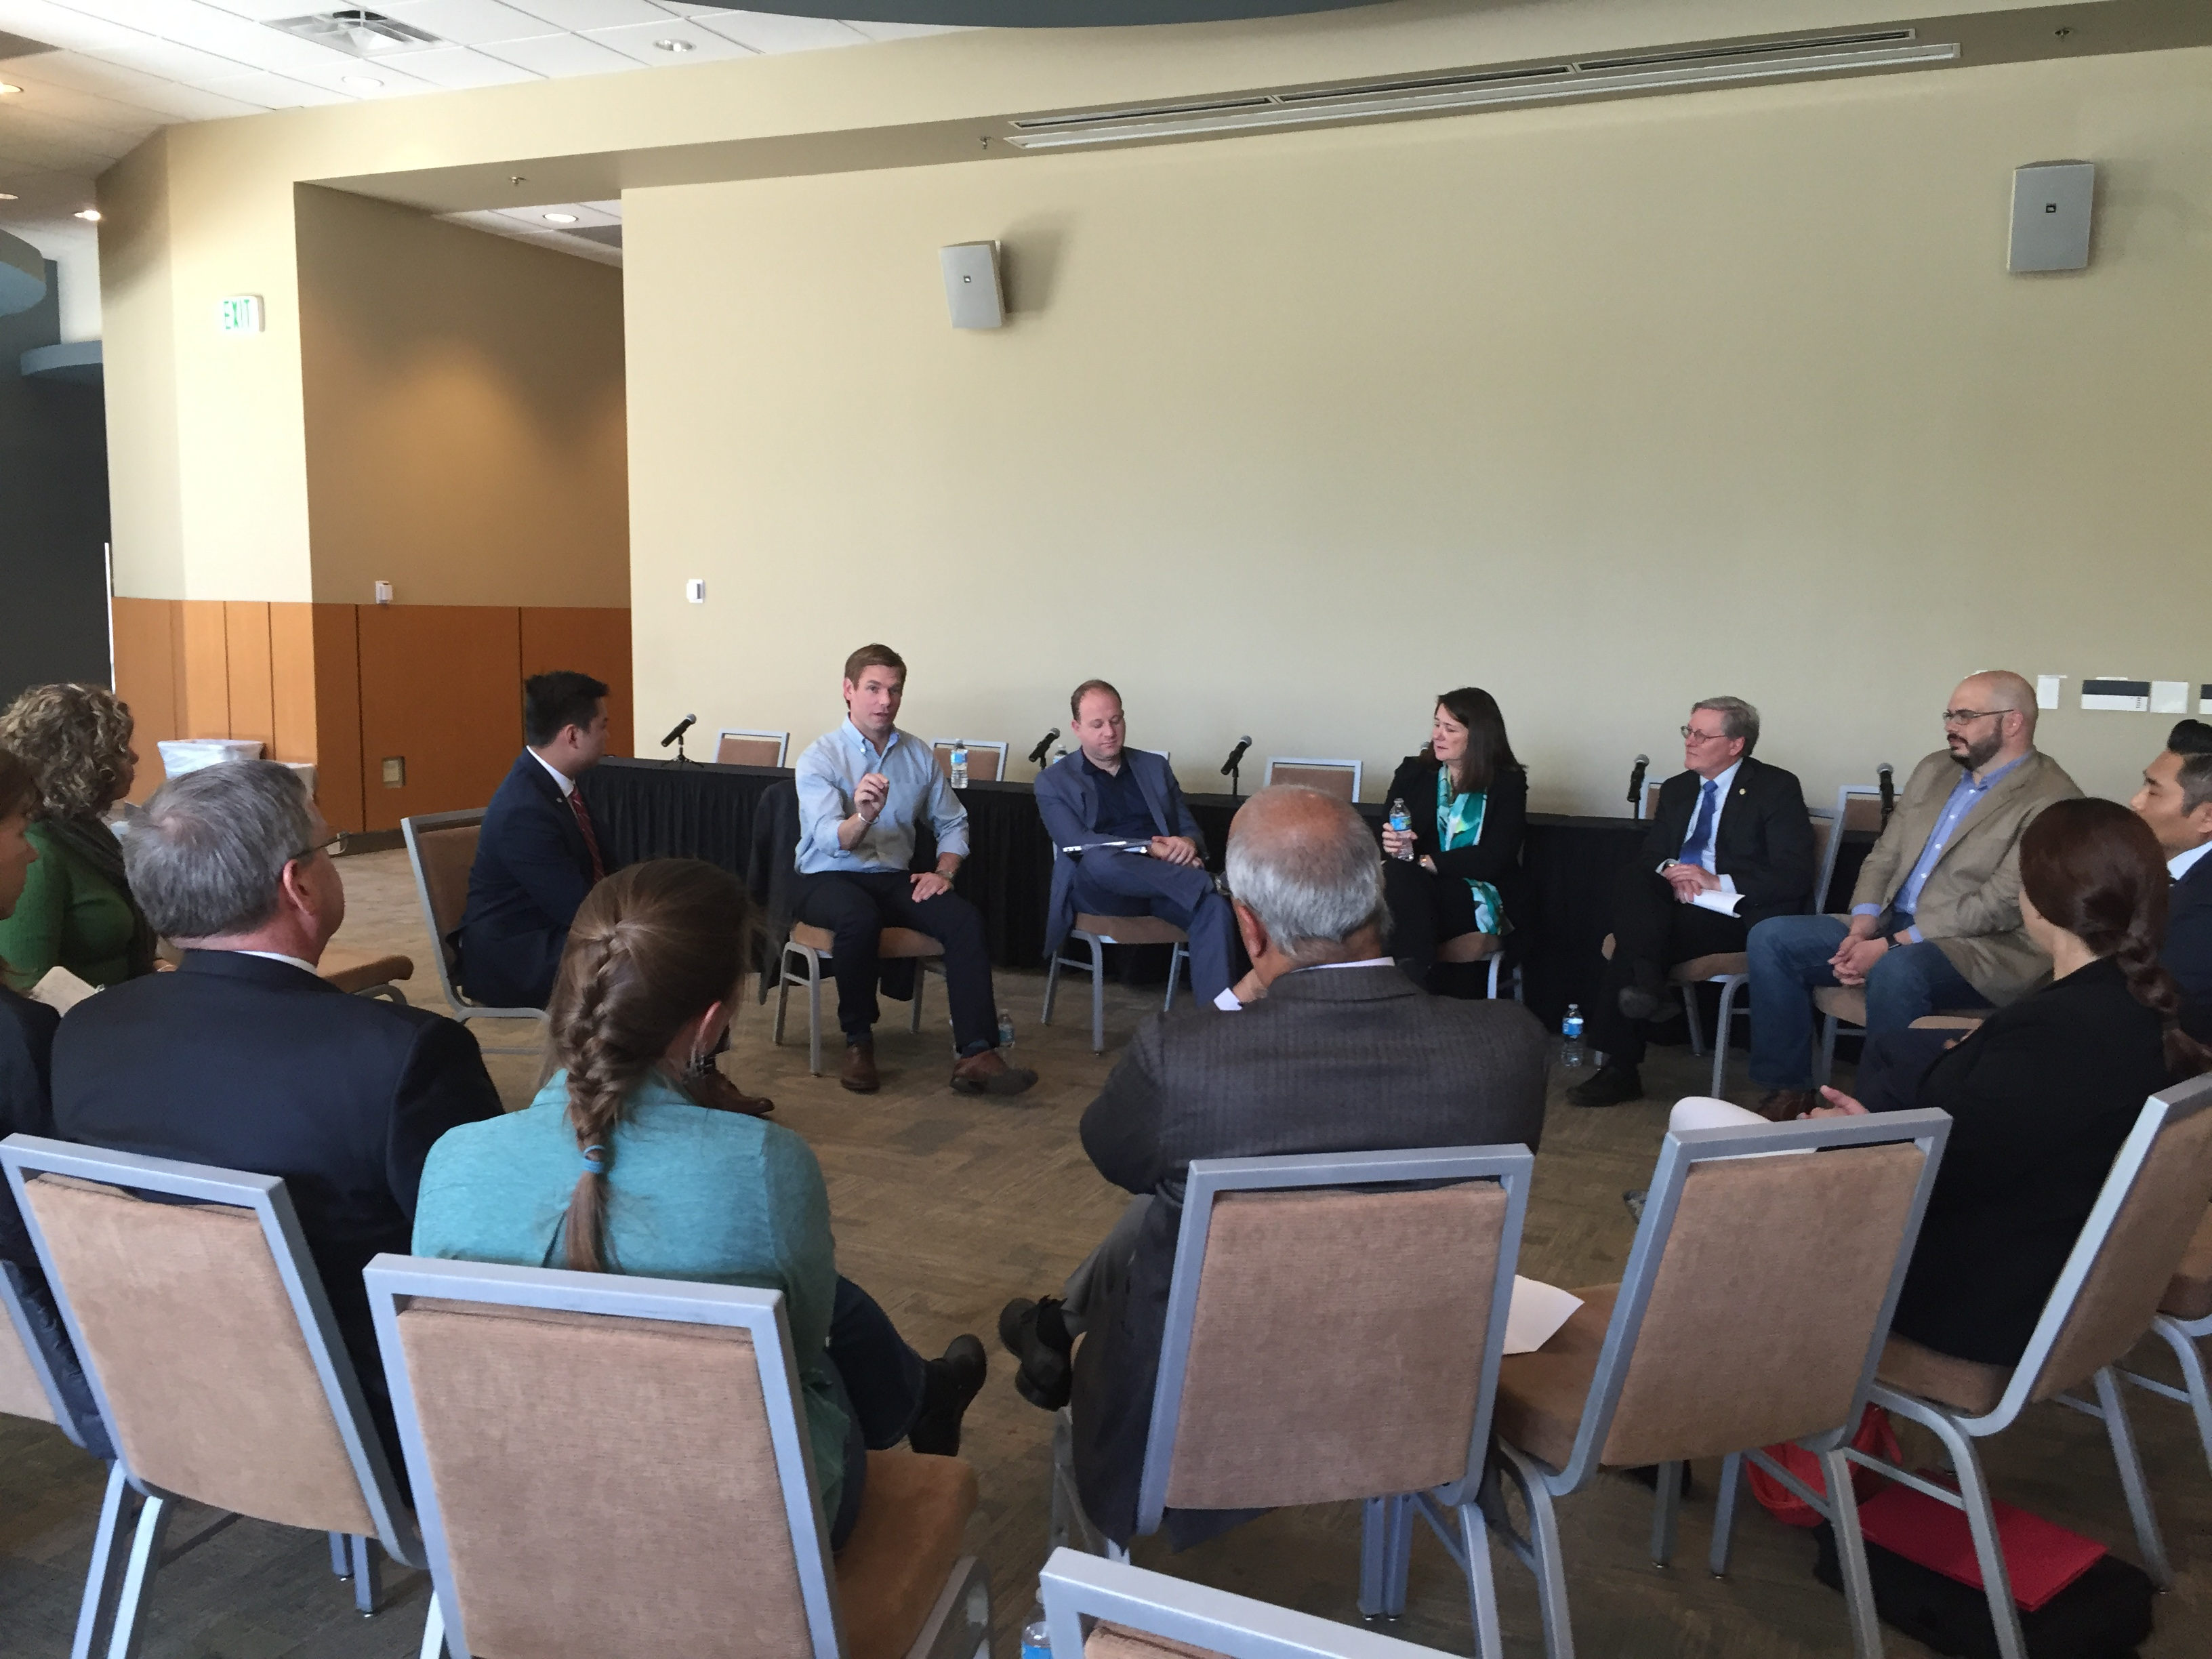 Rep. Swalwell holds Future Forum listening session at University of Colorado in Denver, April 2016.